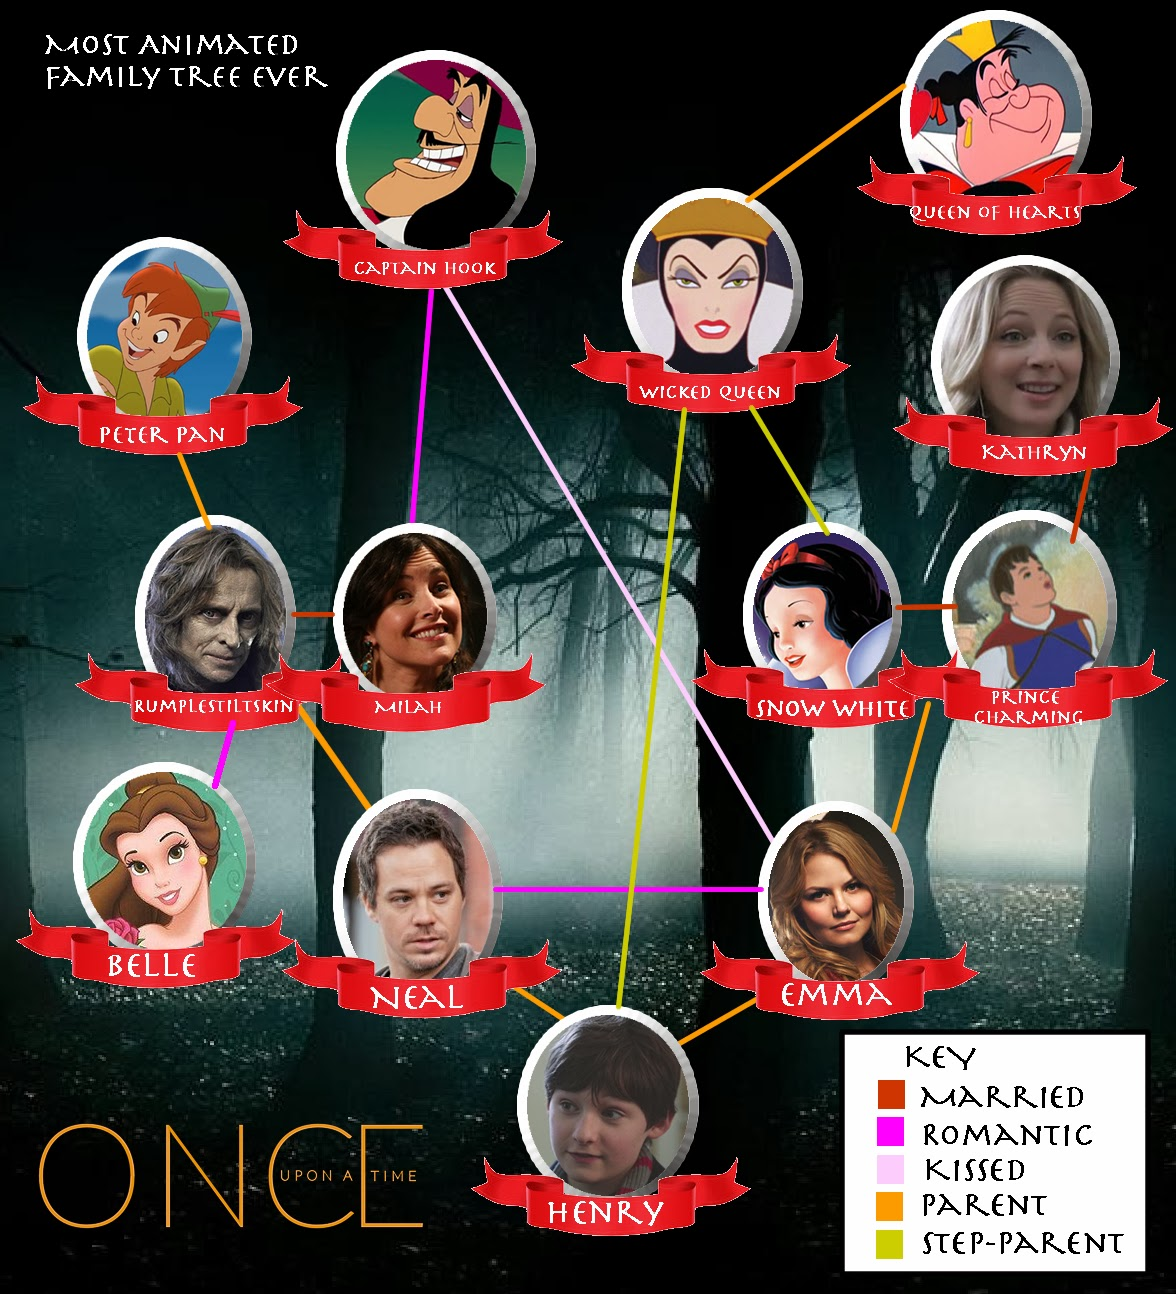 Spanengrish Ramblings: Once Upon A Time Family Tree